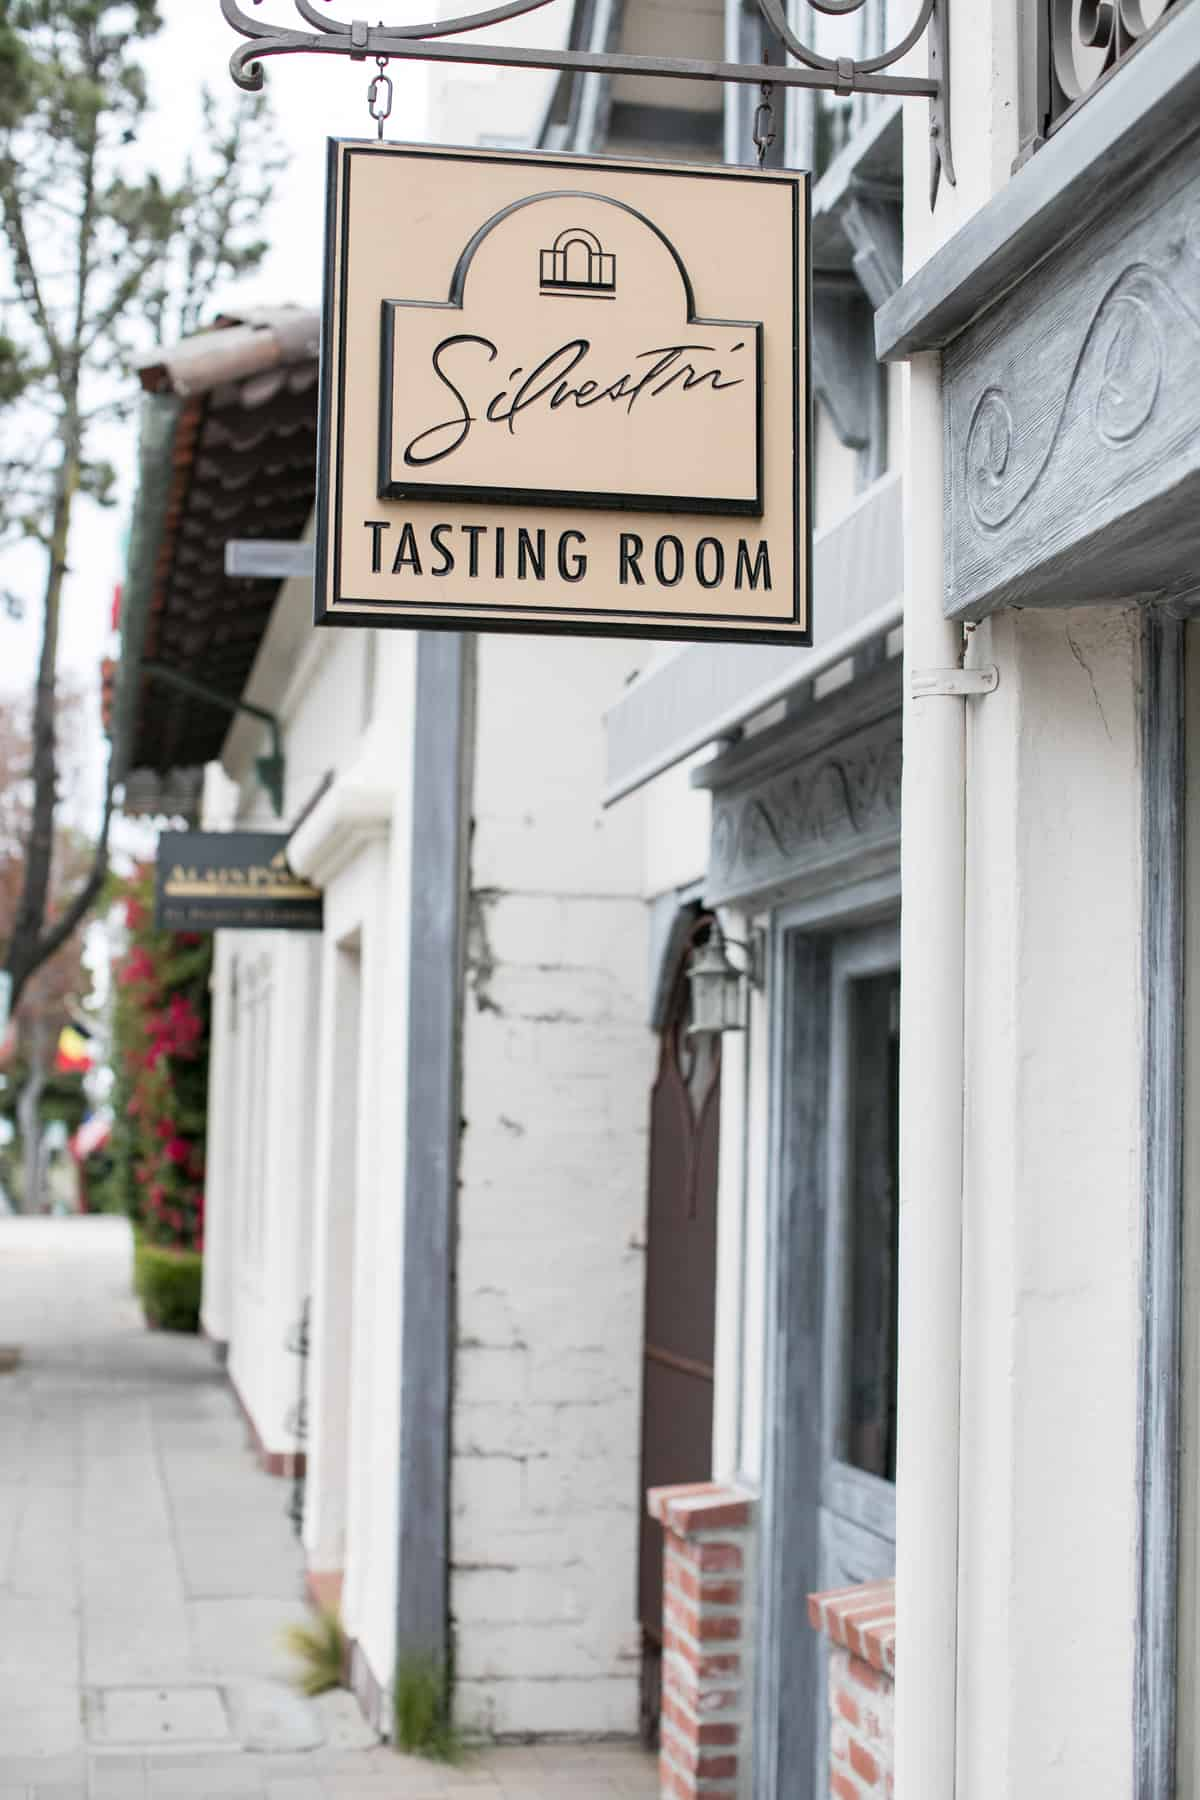 Silvestri tasting room sign outside of the wine room